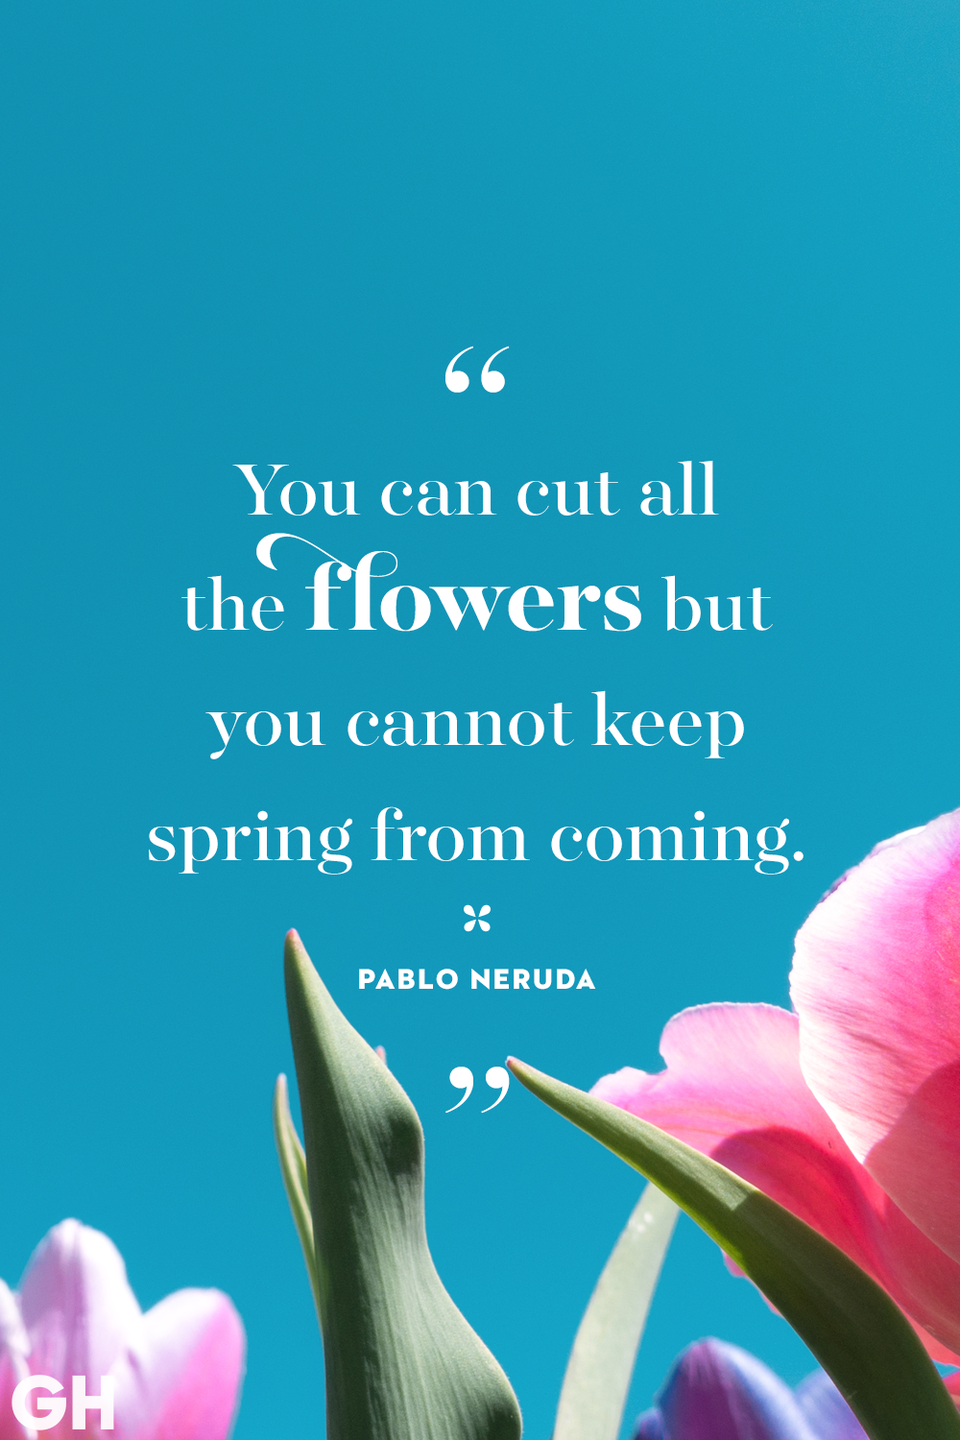 <p>You can cut all the flowers but you cannot keep spring from coming.</p>